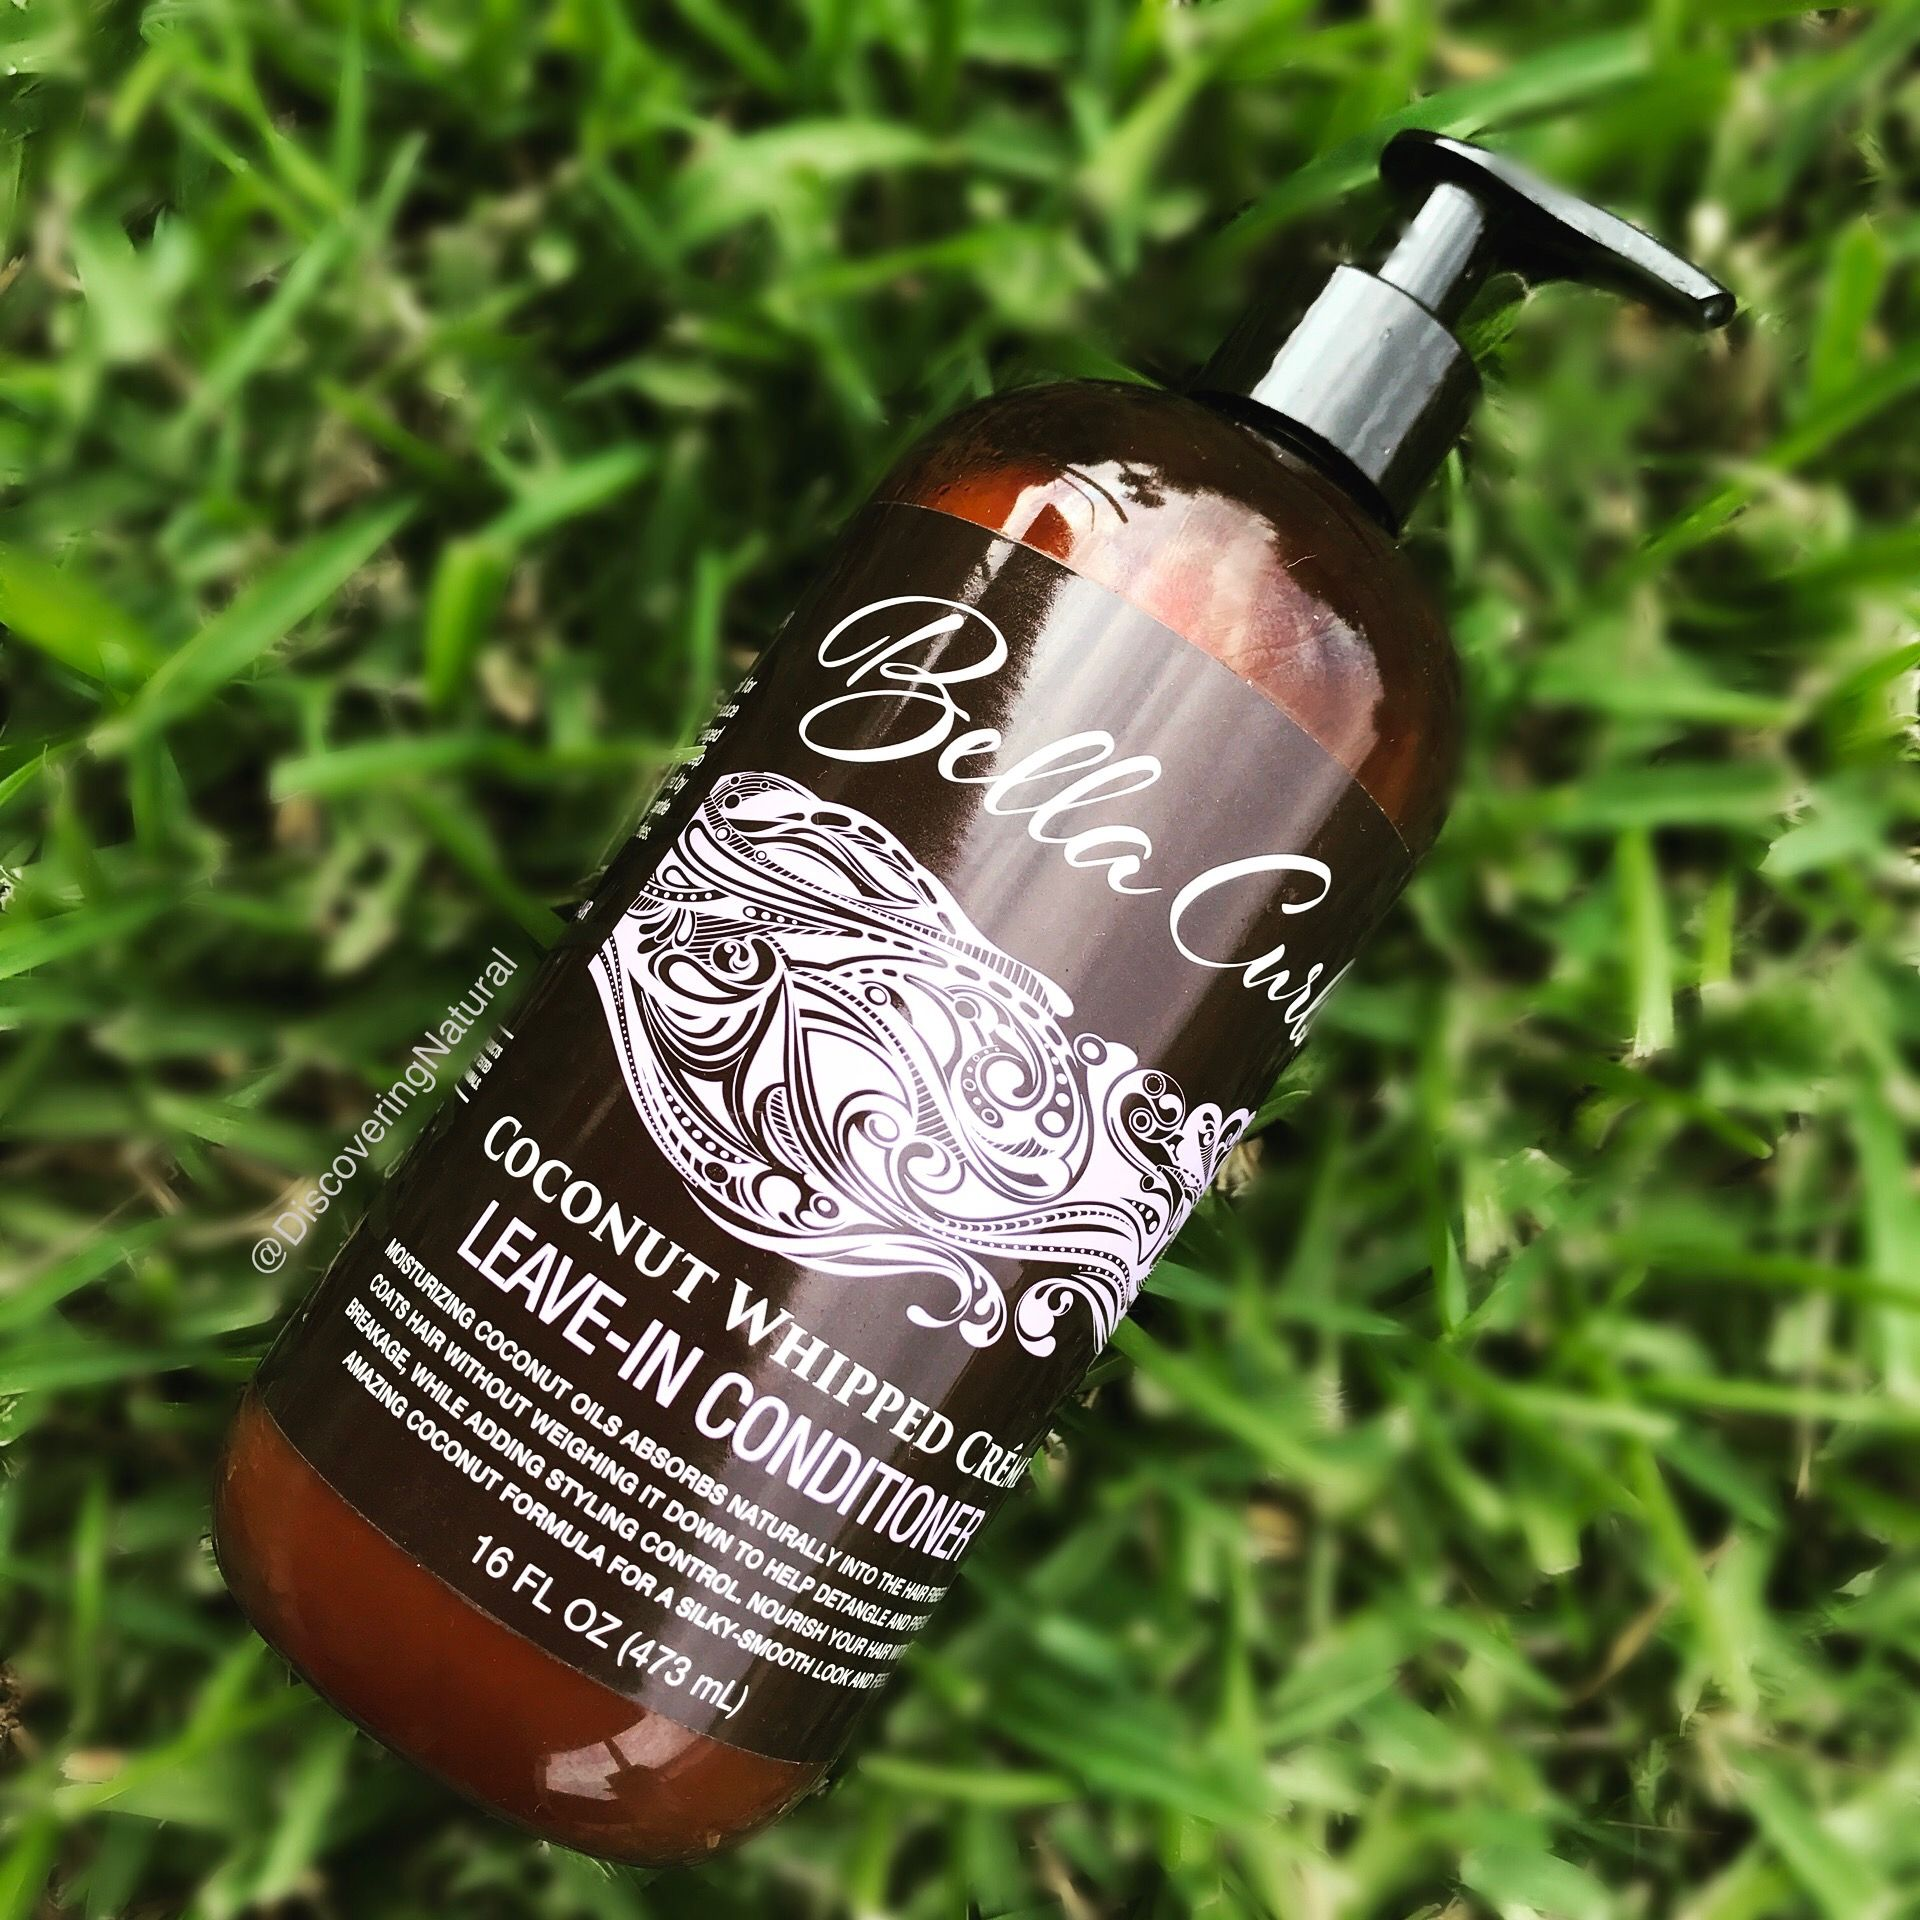 Bella curls whipped coconut creme leave in conditioner